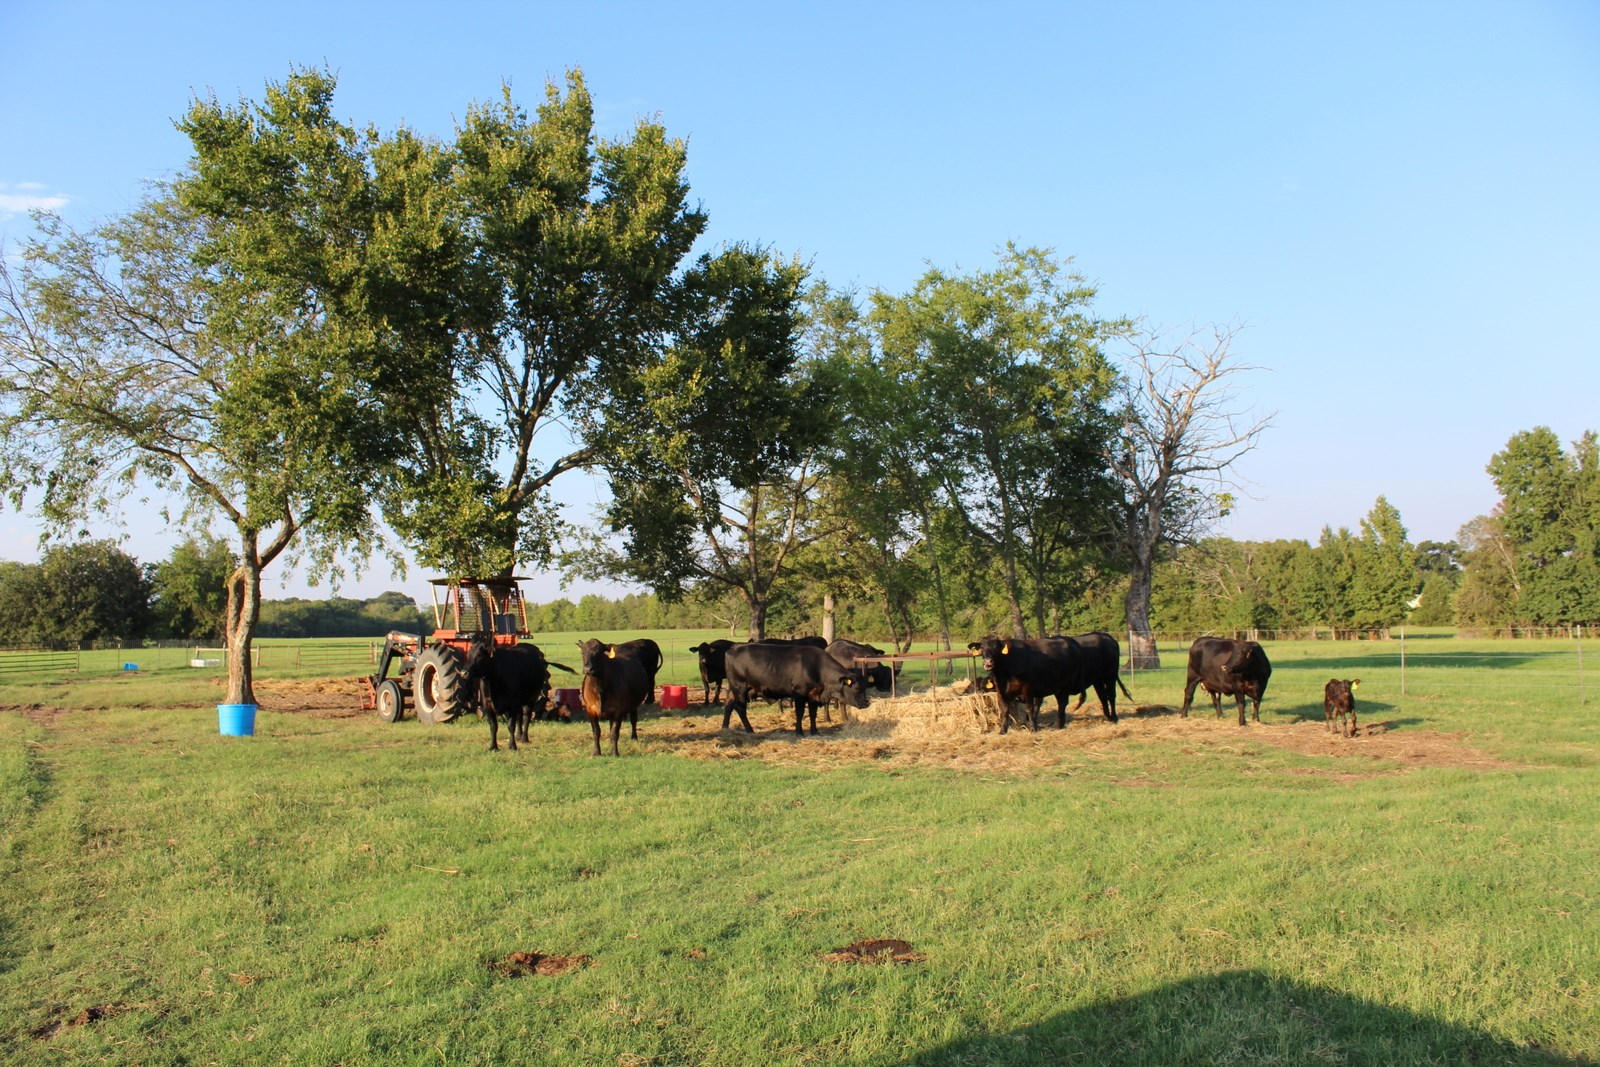 80 EAST TEXAS ACRES - WORKING CATTLE RANCH WOOD COUNTY TEXAS